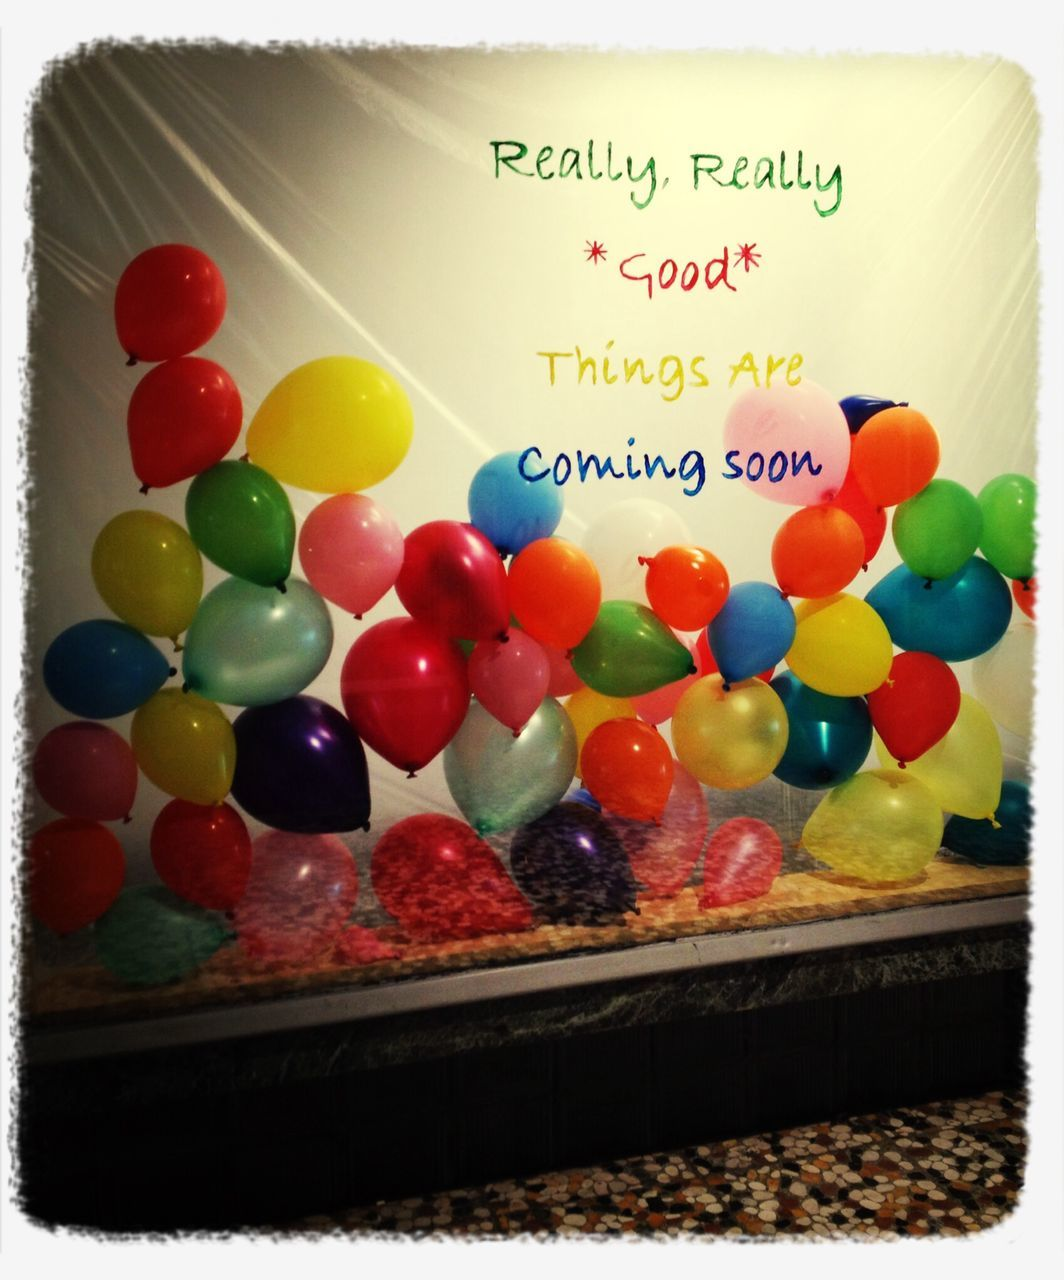 Multi colored balloons and text on window display